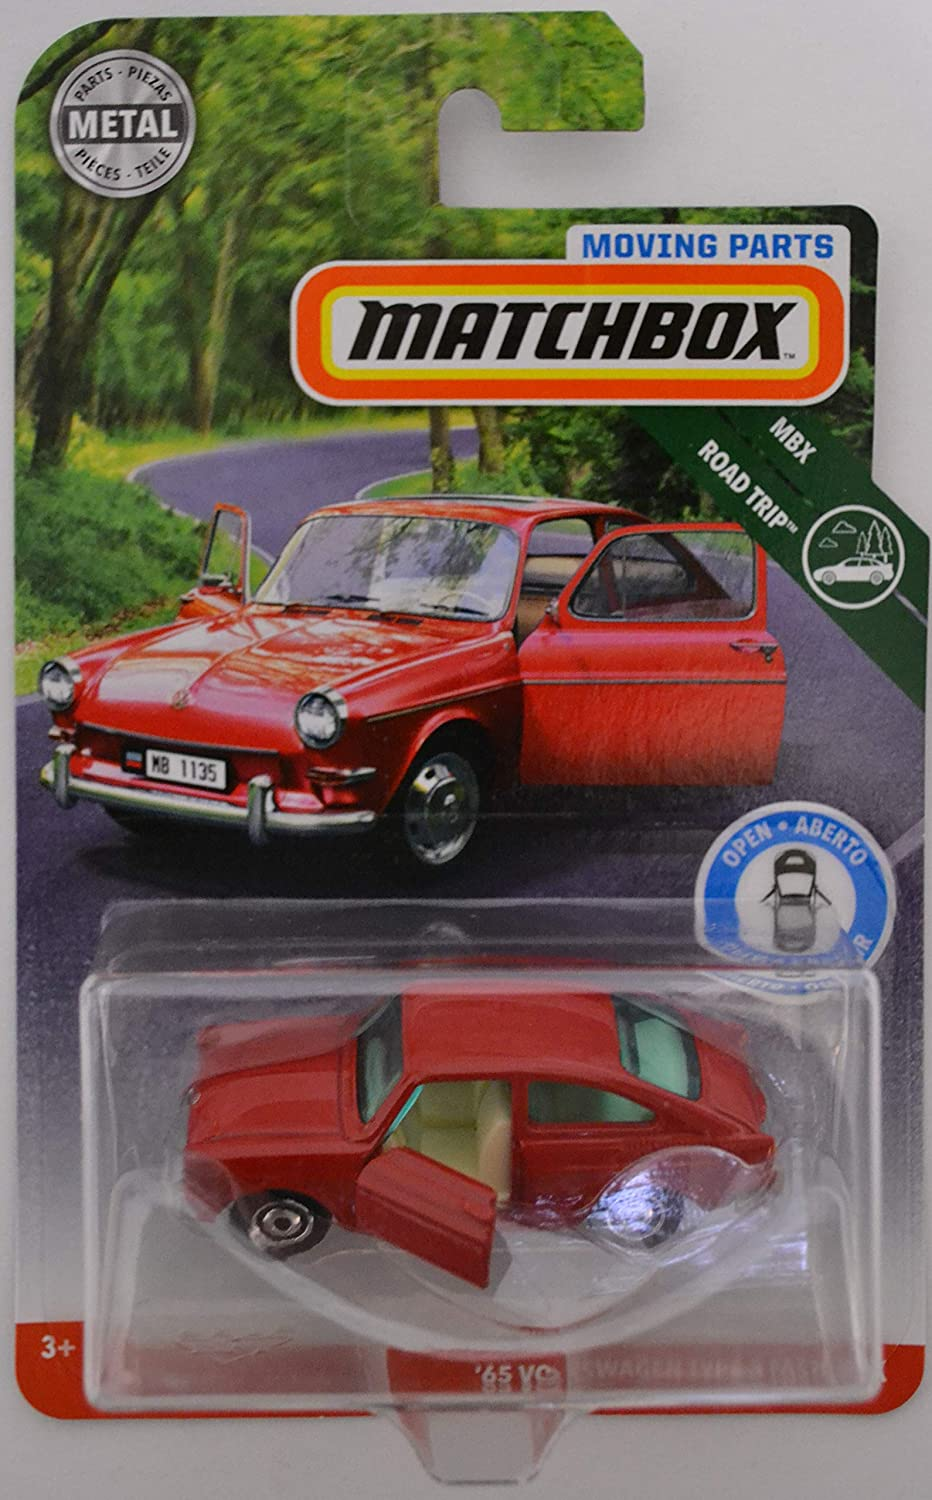 Matchbox Red '65 Volkswagen Type 3 Fastback 2018 Moving Parts Road Trip  Series 1:64 Scale Collectible Die Cast Metal Toy Car Model with Opening  Doors